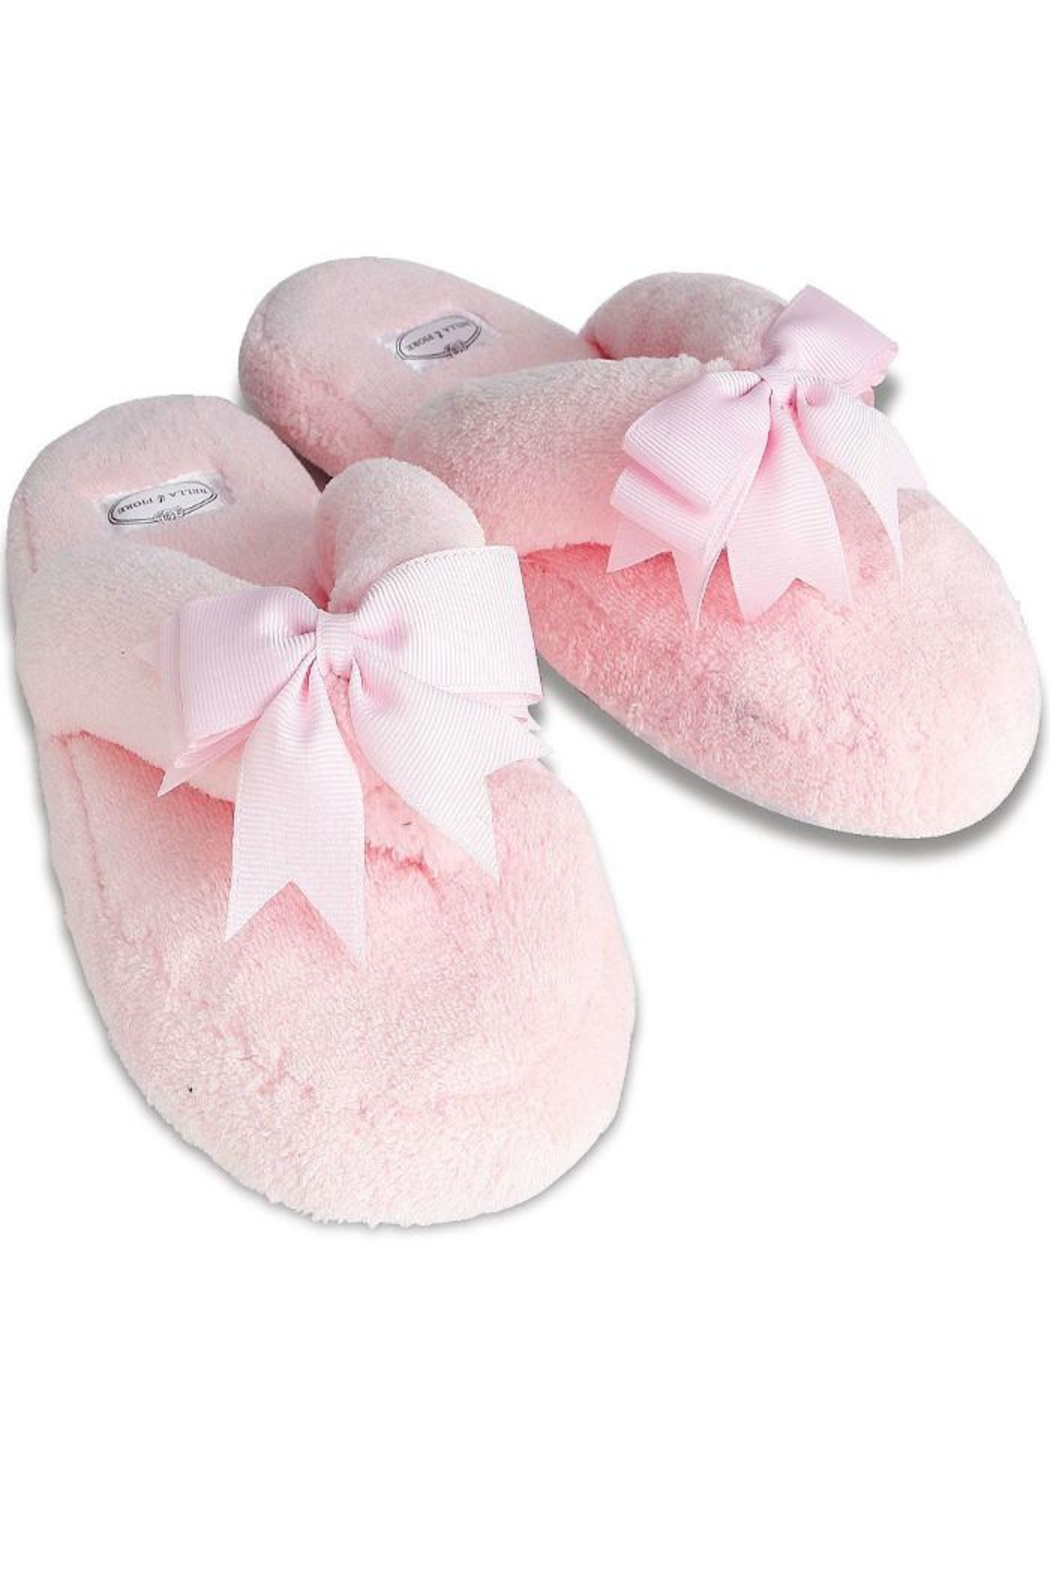 Bella il Fiore Plush Spa Slippers - Main Image